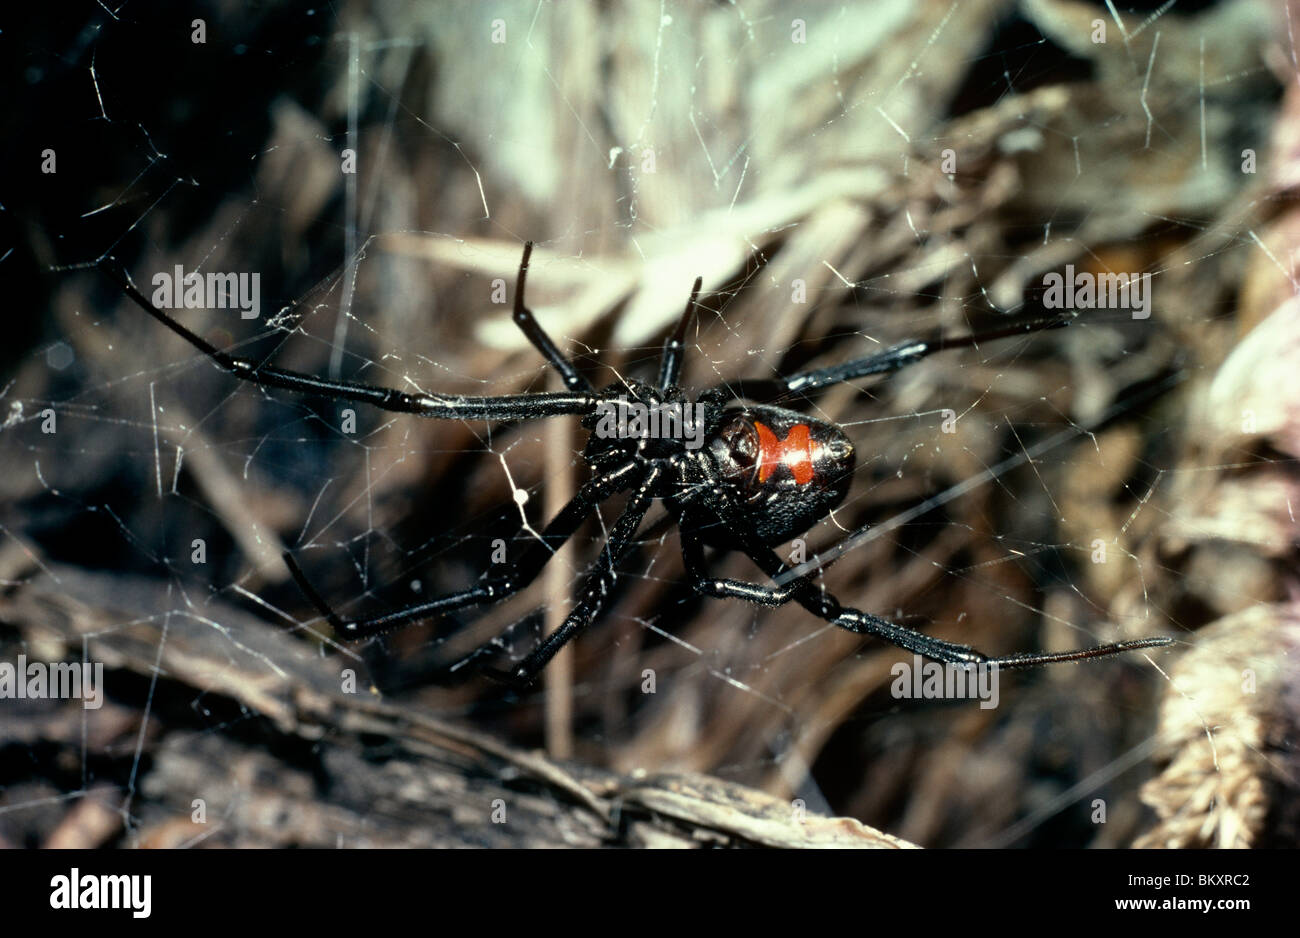 Southern black widow spider (Latrodectus mactans: Theridiidae) female in her web, Mexico - Stock Image